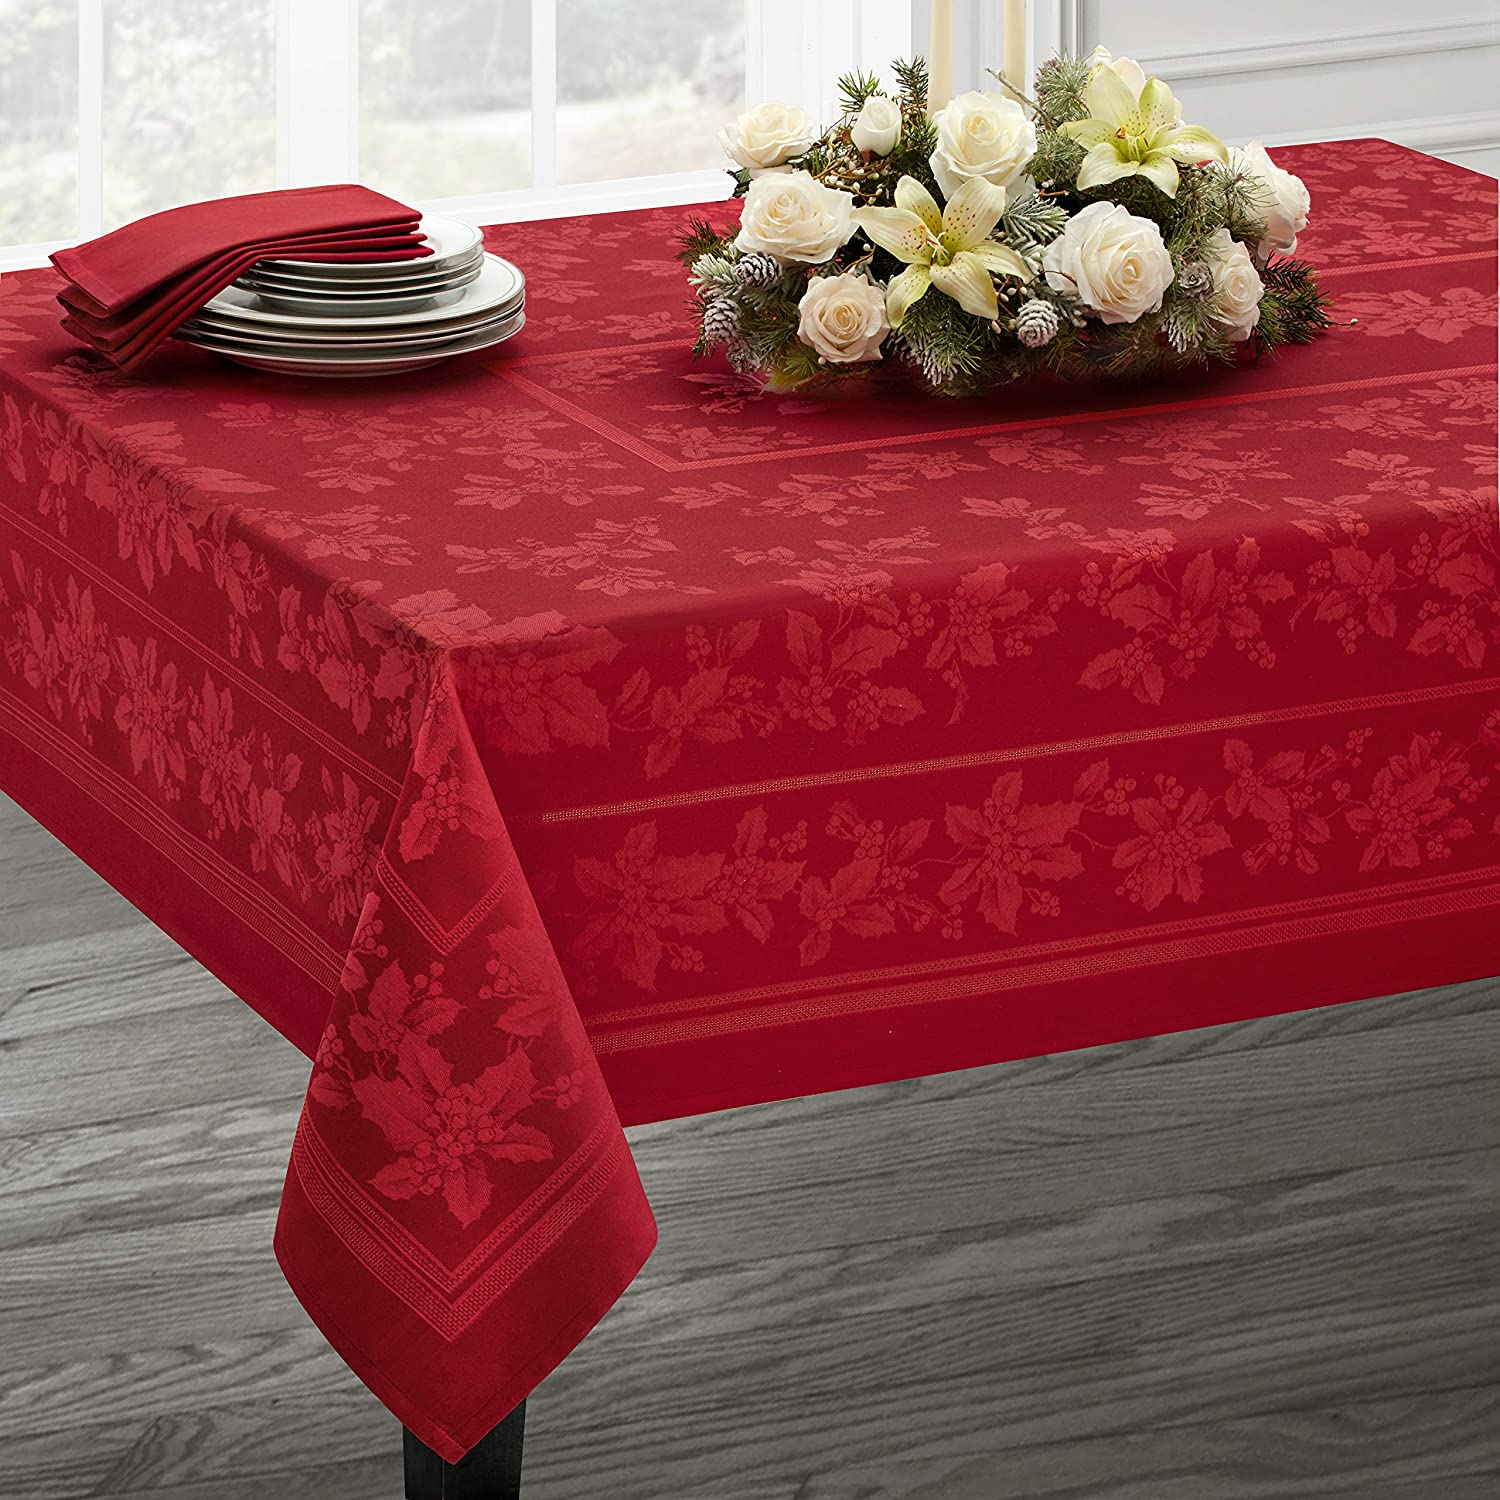 "Benson Mills Holiday Elegance Engineered Jacquard Christmas Tablecloth (RED, 60"" X 120"" Rectangular)"